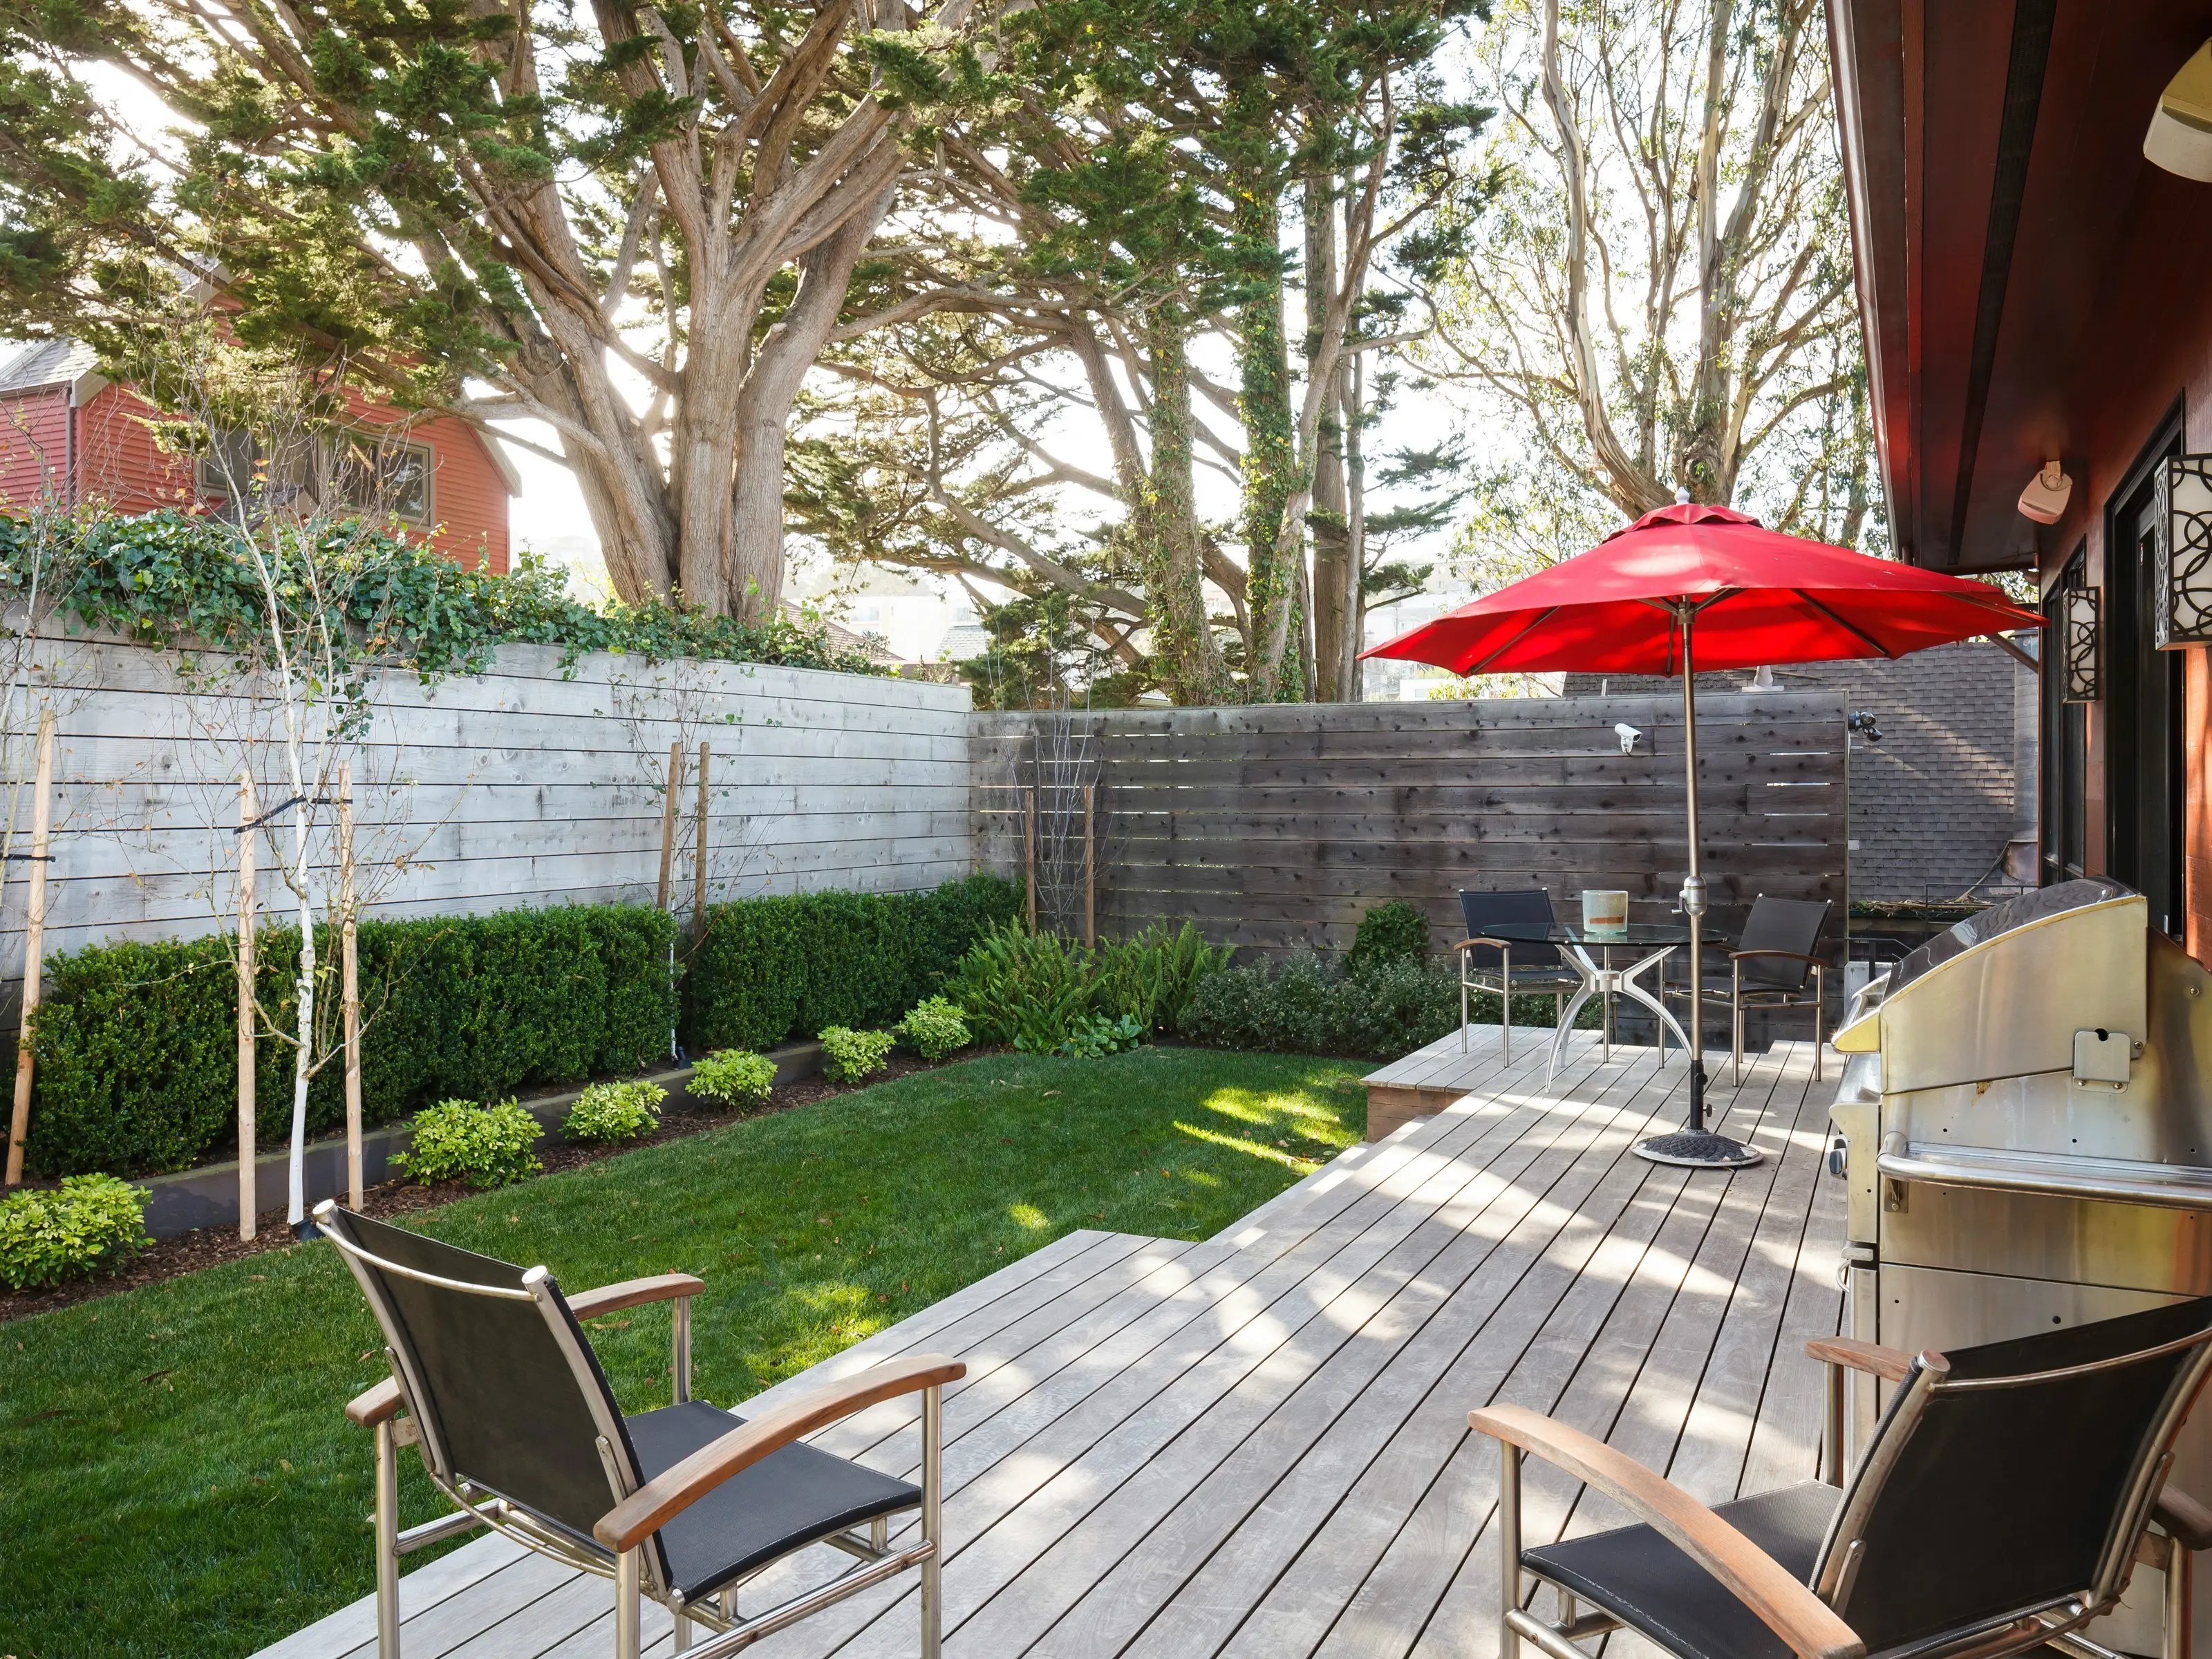 Here's a view of the home's private backyard.